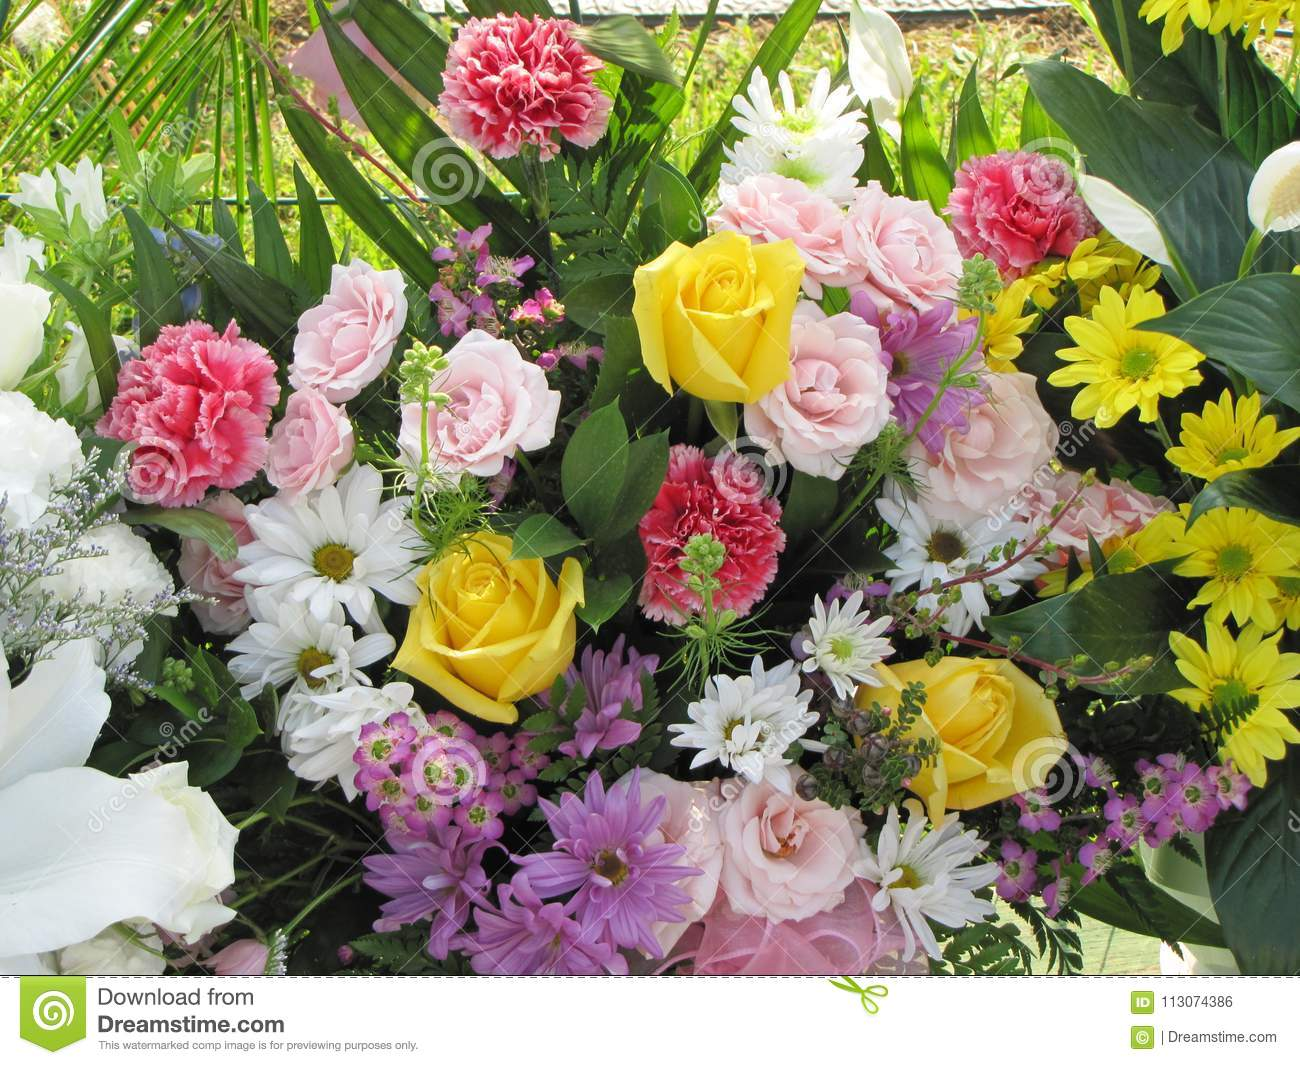 Roses and daises and carnations oh my what a bouquet stock photo roses and daises and carnations oh my what a bouquet izmirmasajfo